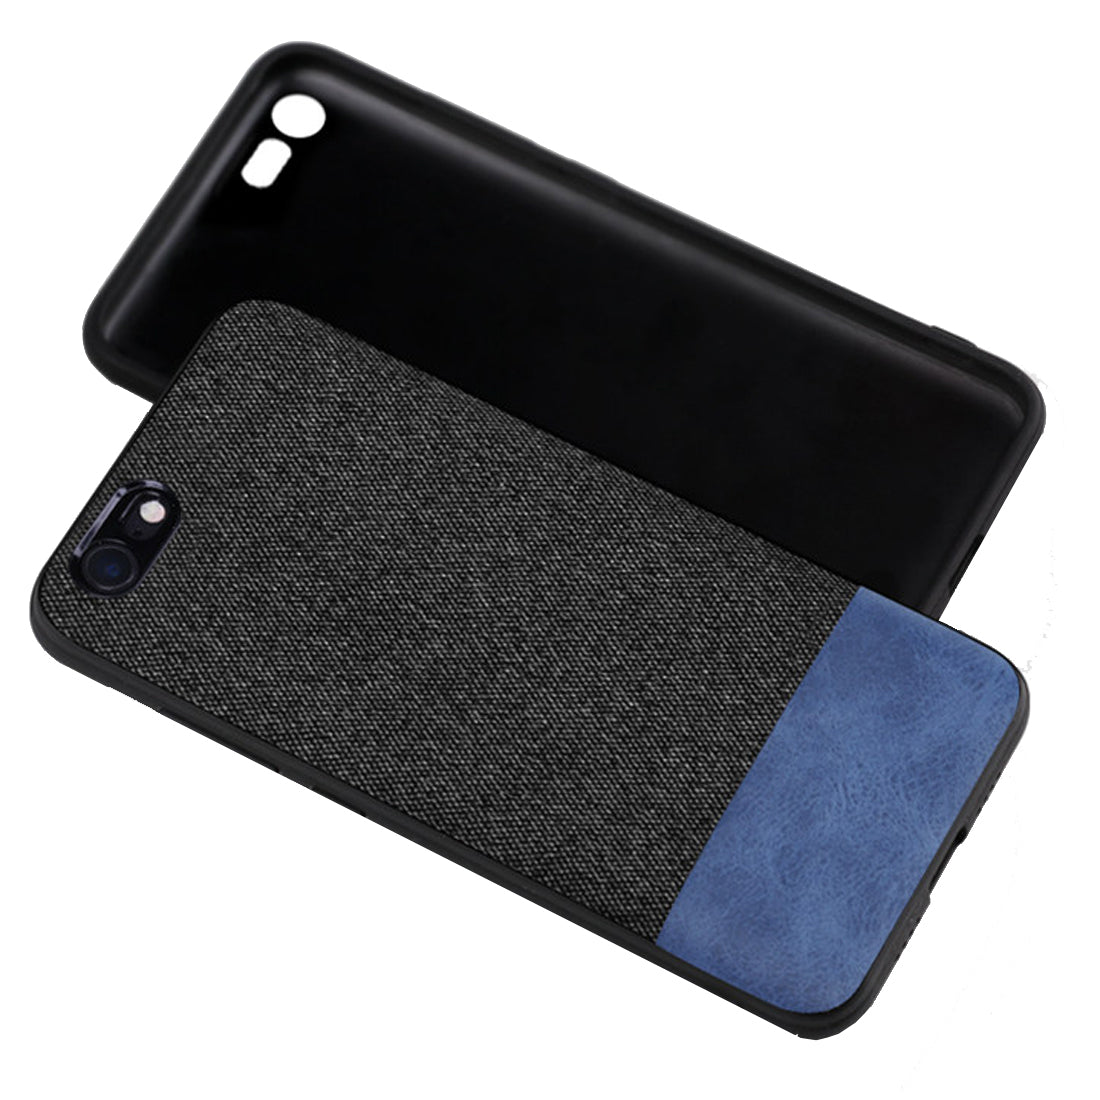 Fabric + Leather Hybrid Protective Case Cover for Apple iPhone 7 / iPhone 8 -  Black , Blue - Mobizang